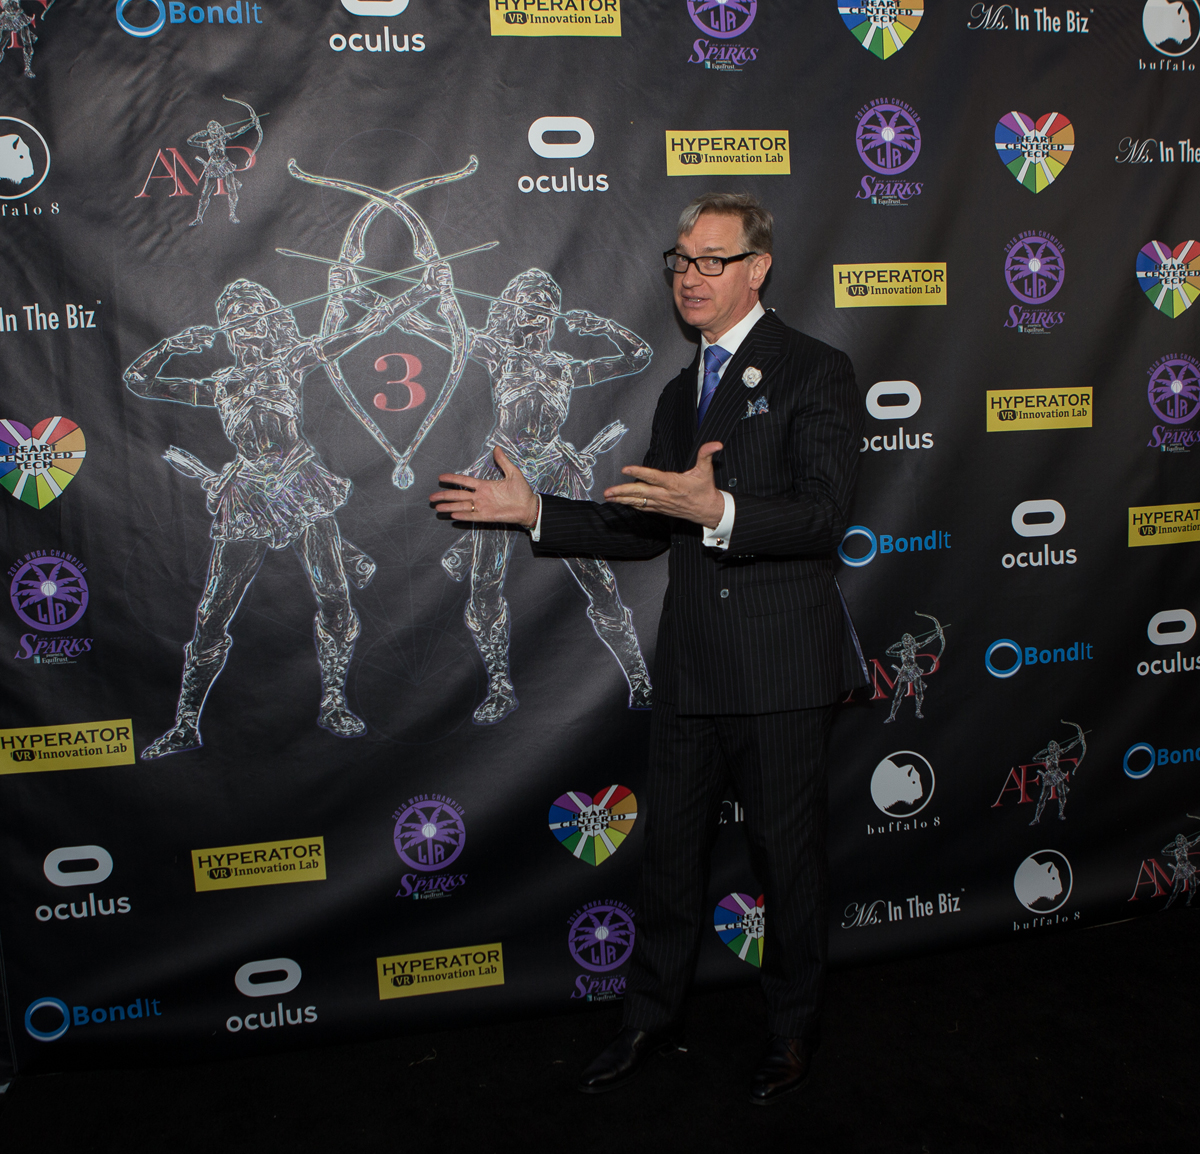 Paul Feig, 2016 Action Rebel Honoree & Presentation Credit of 2017 Festival